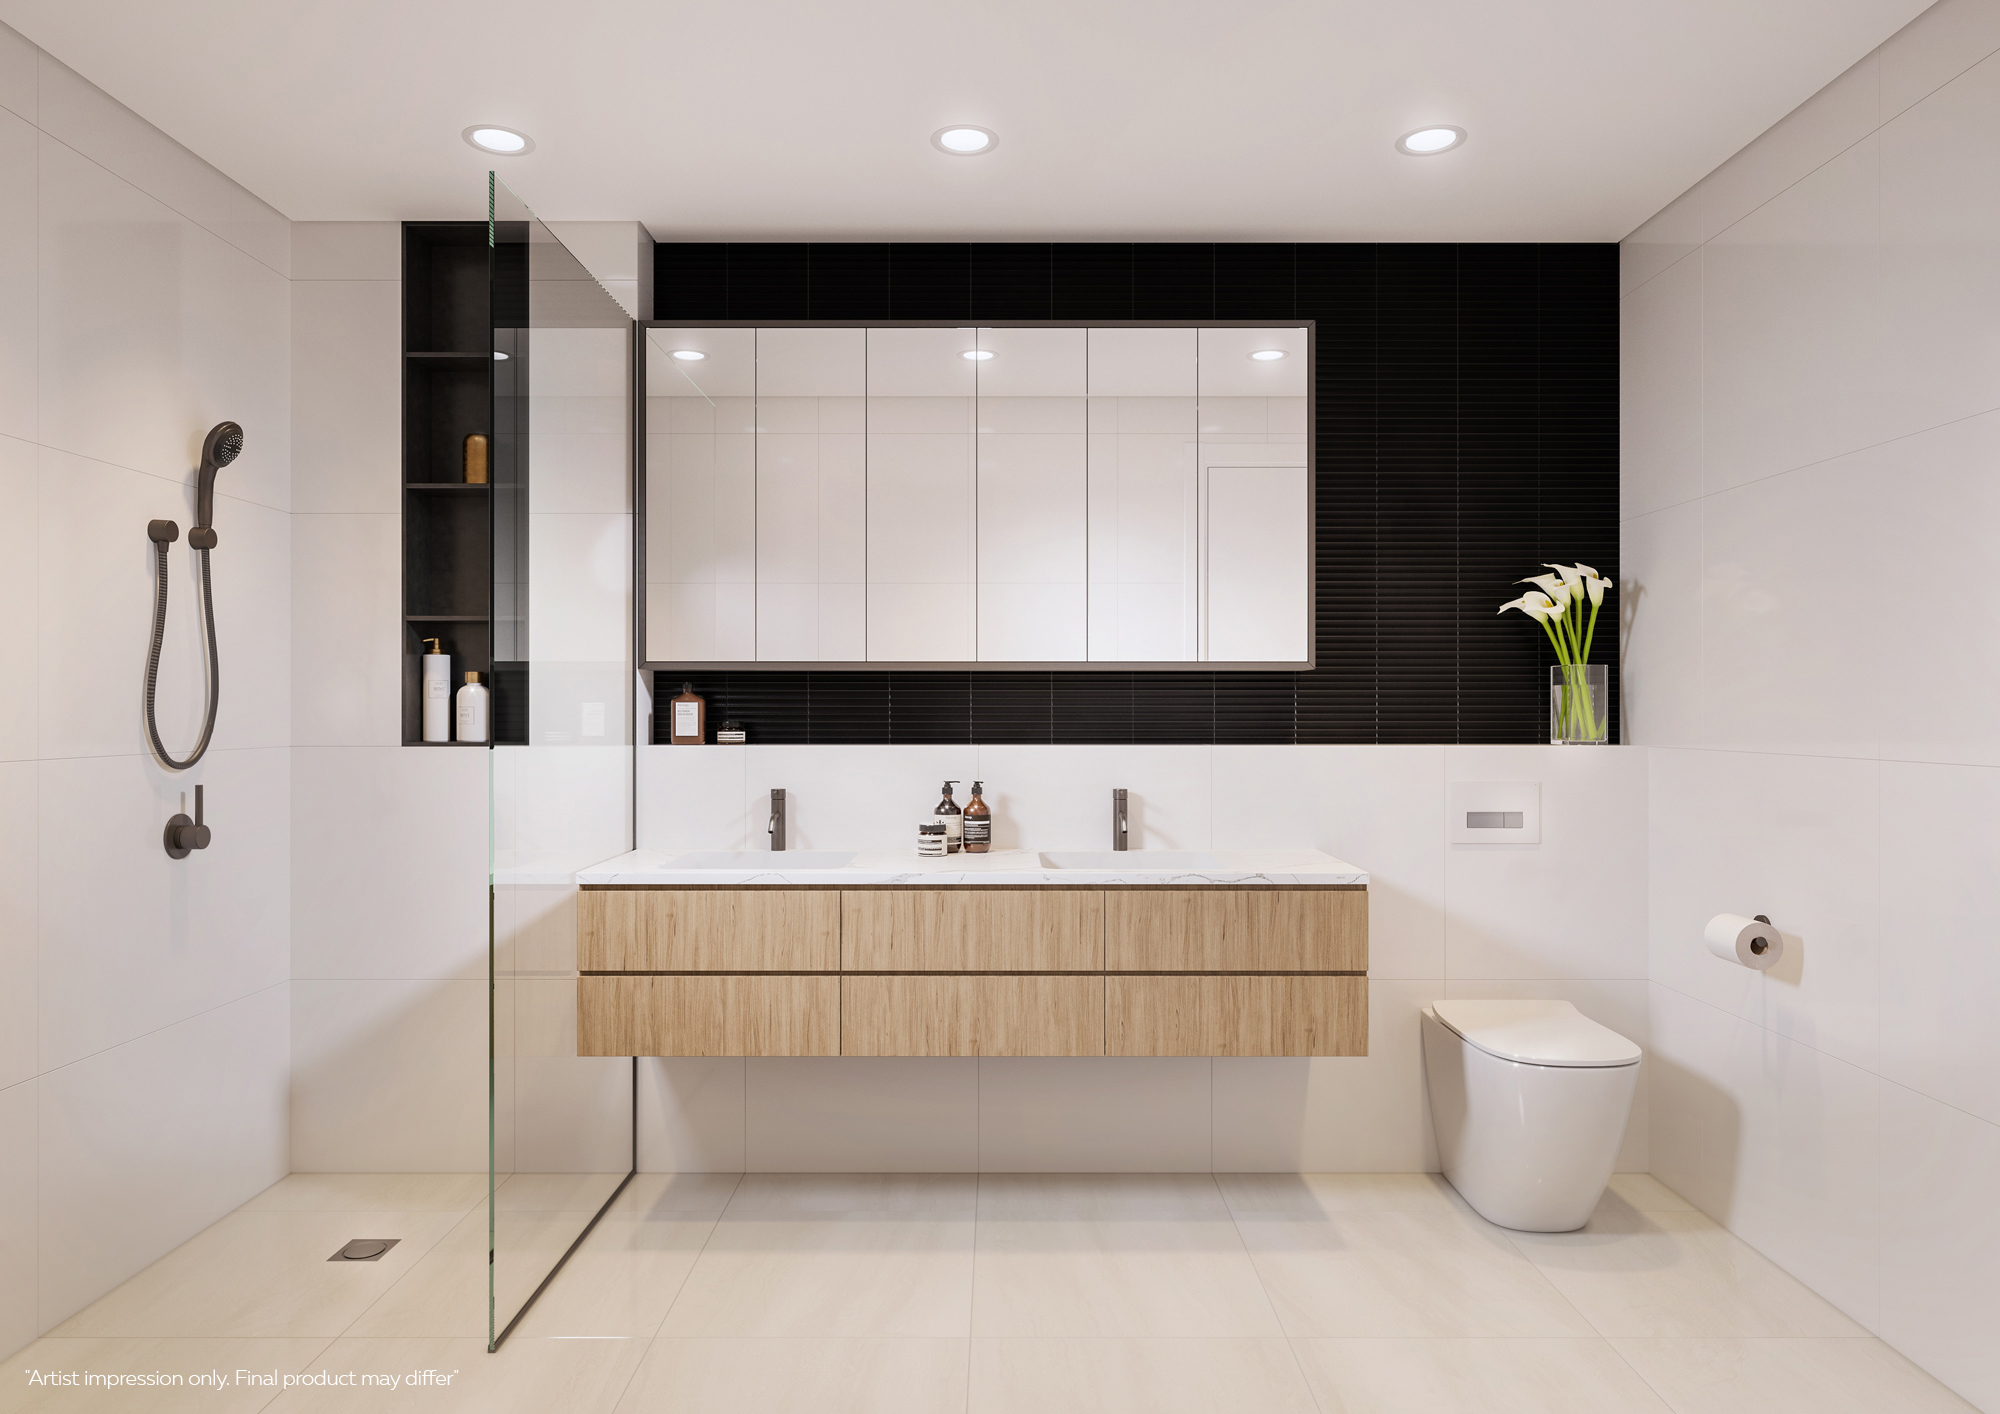 WEB_Ensuite_V2_11-15_Dorset_St_3d_Render_by_Volume_Vision.jpg